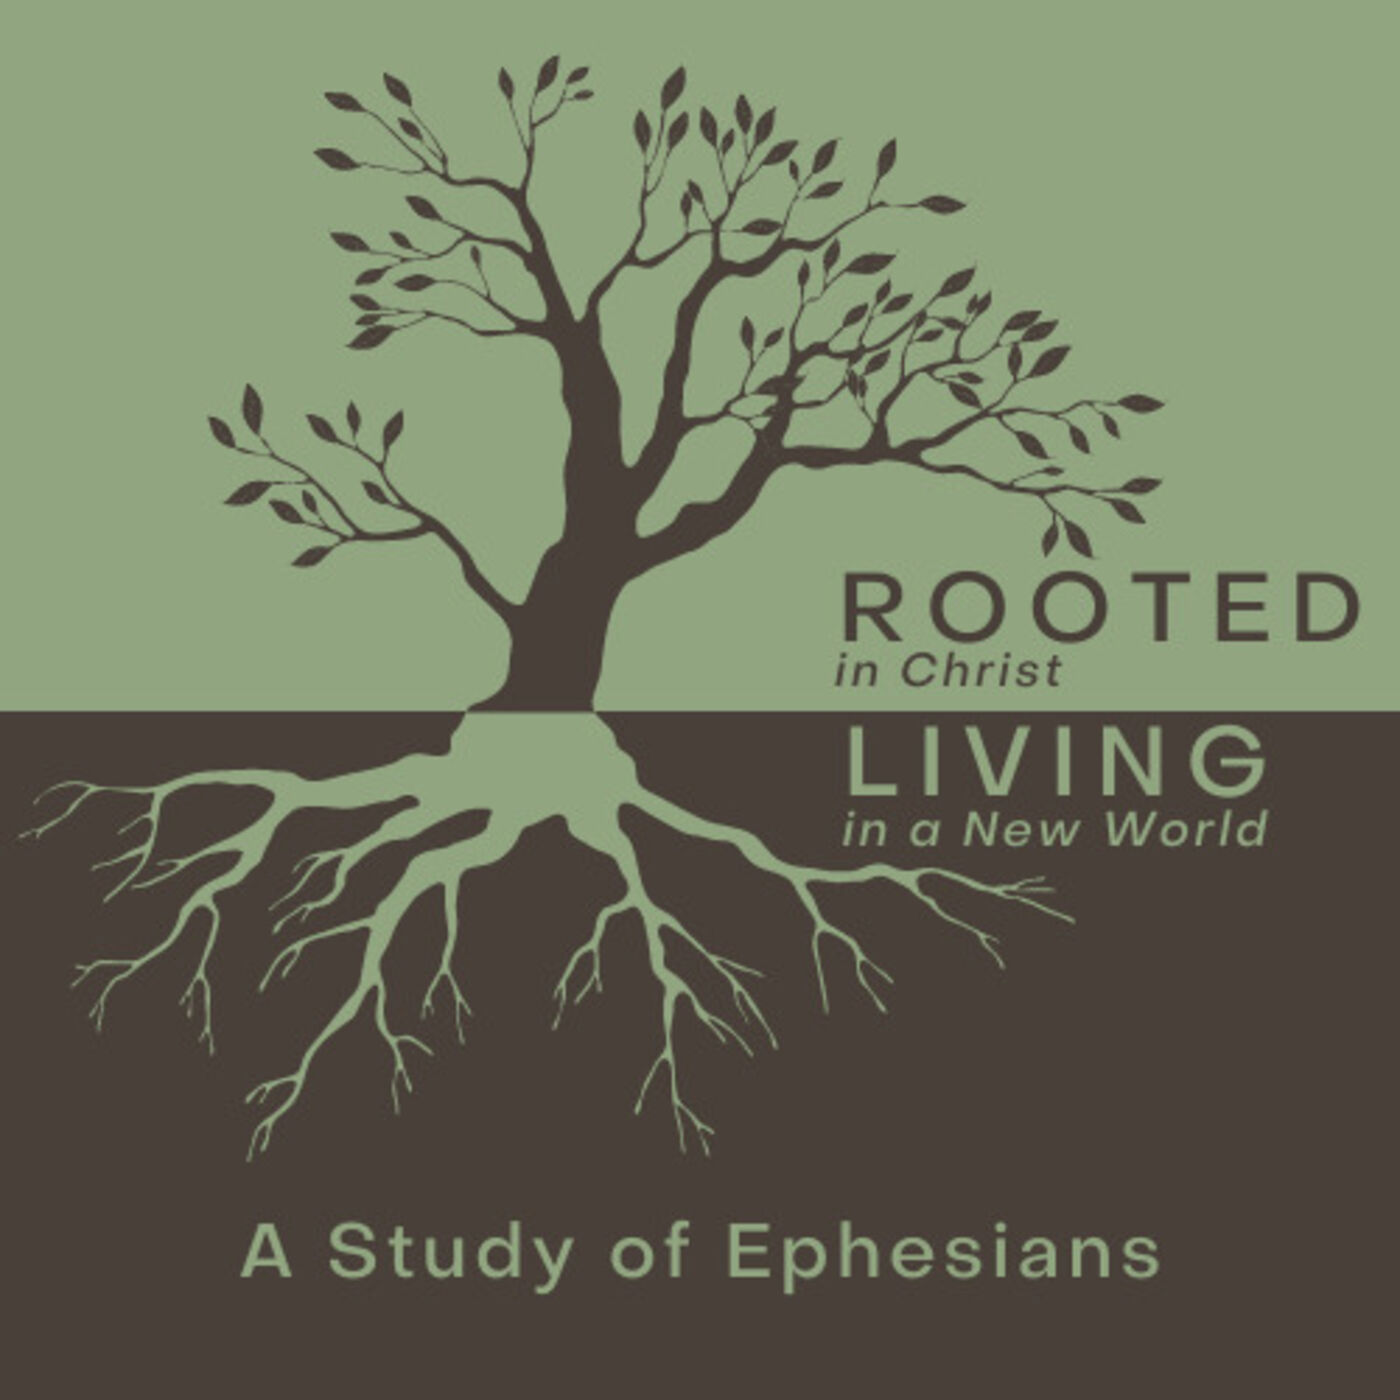 Rooted in Christ, Living in a New World - A New Family